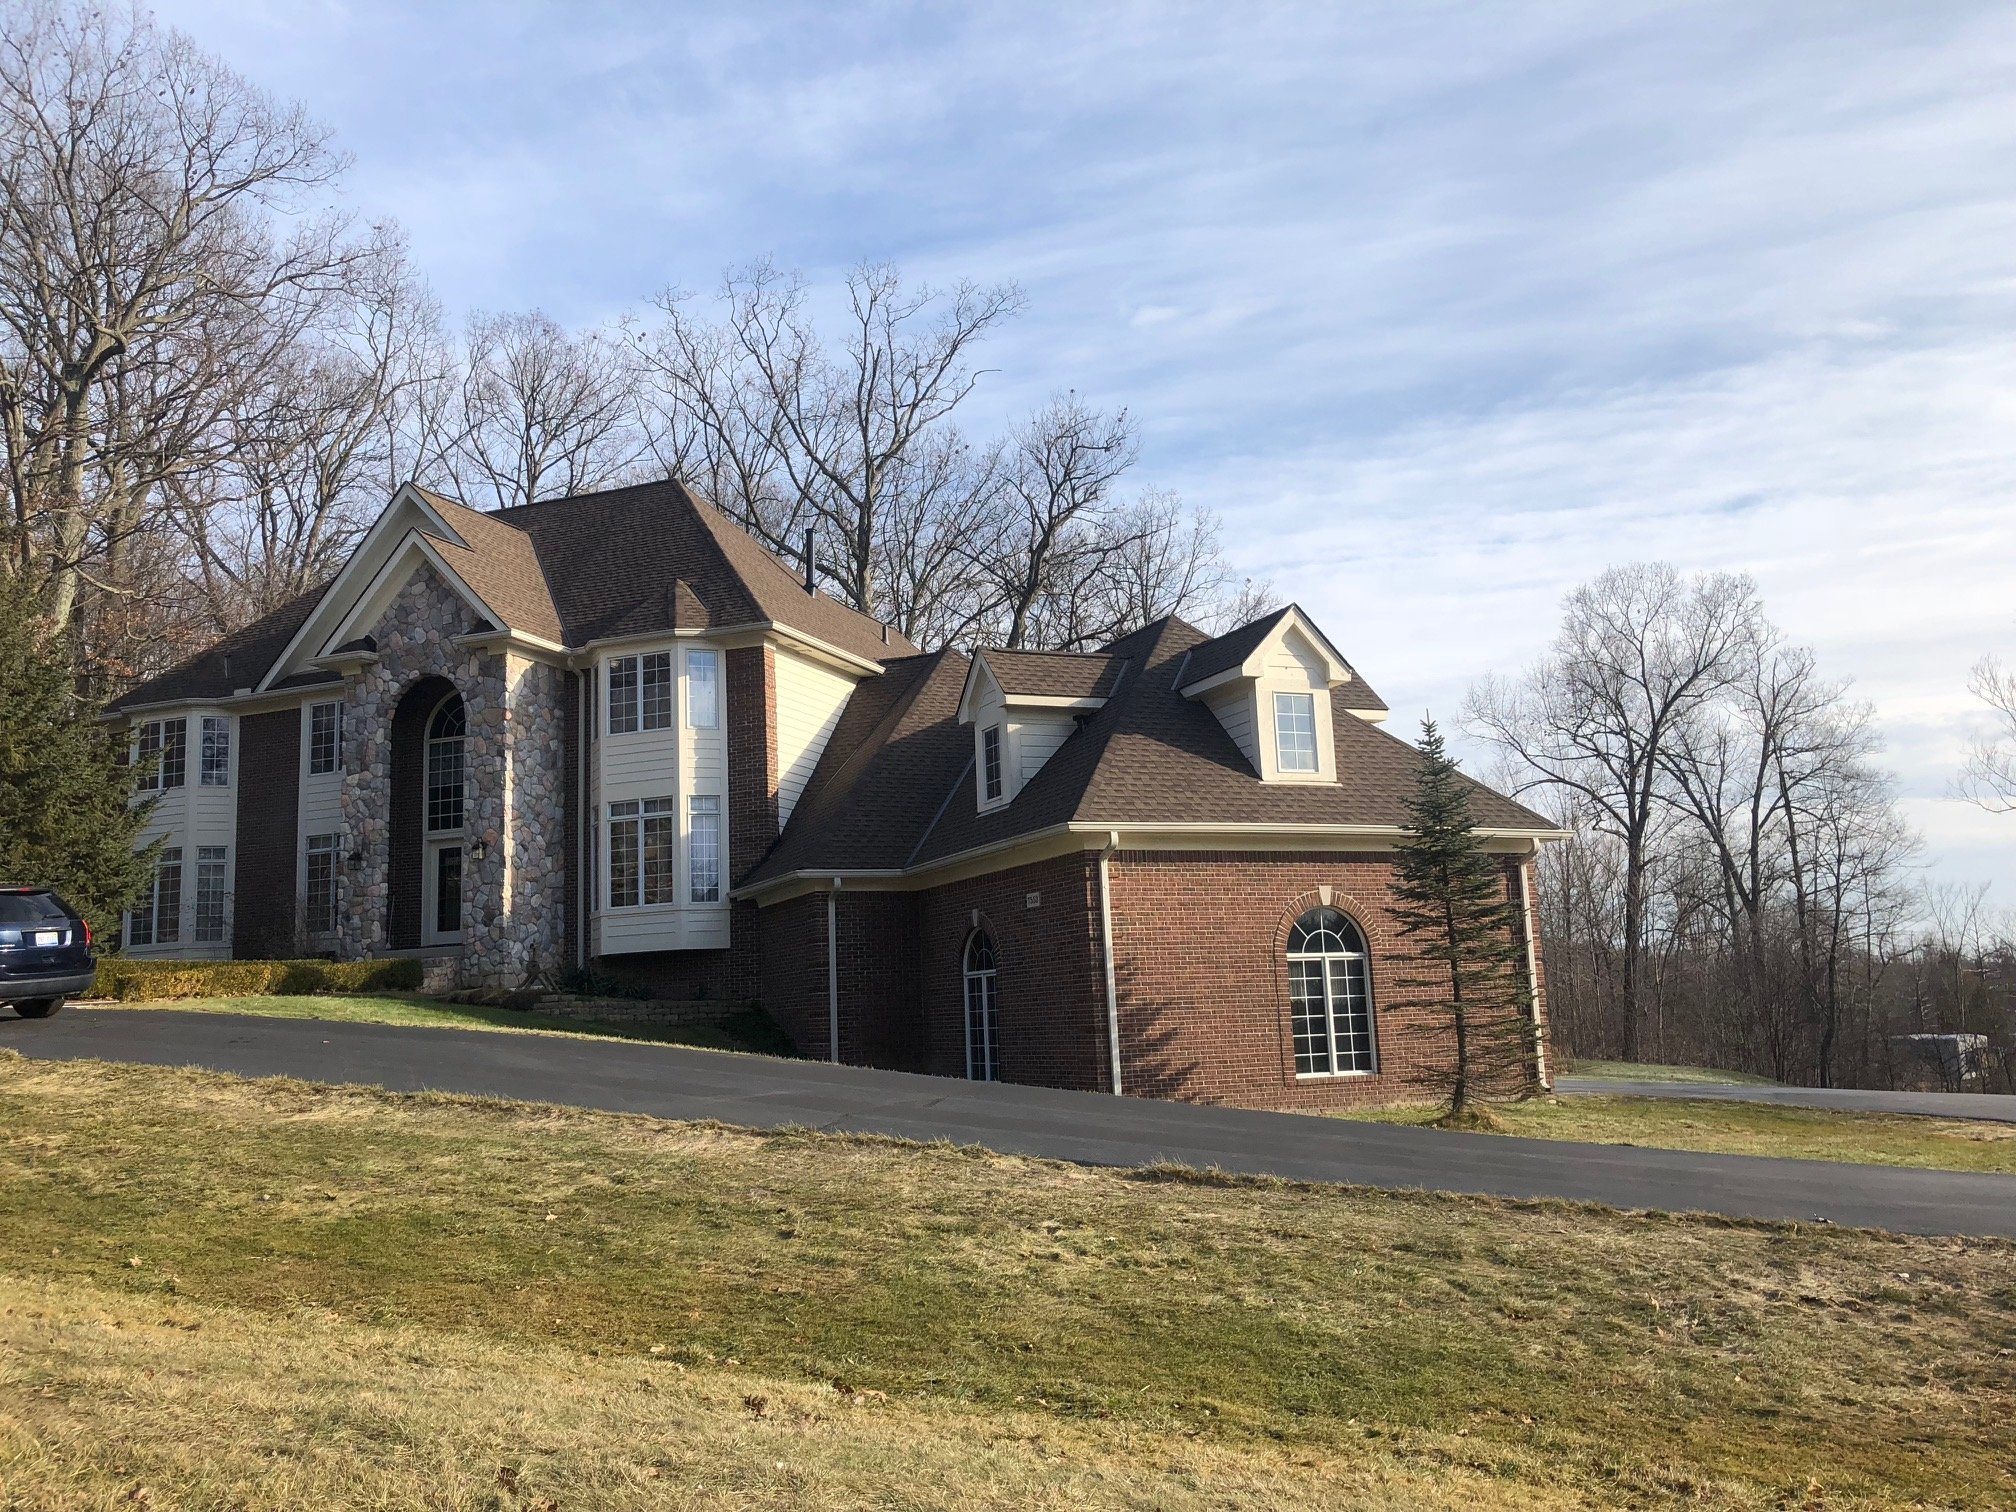 Homes for Sale in Deer Lake Farms Clarkston, MI